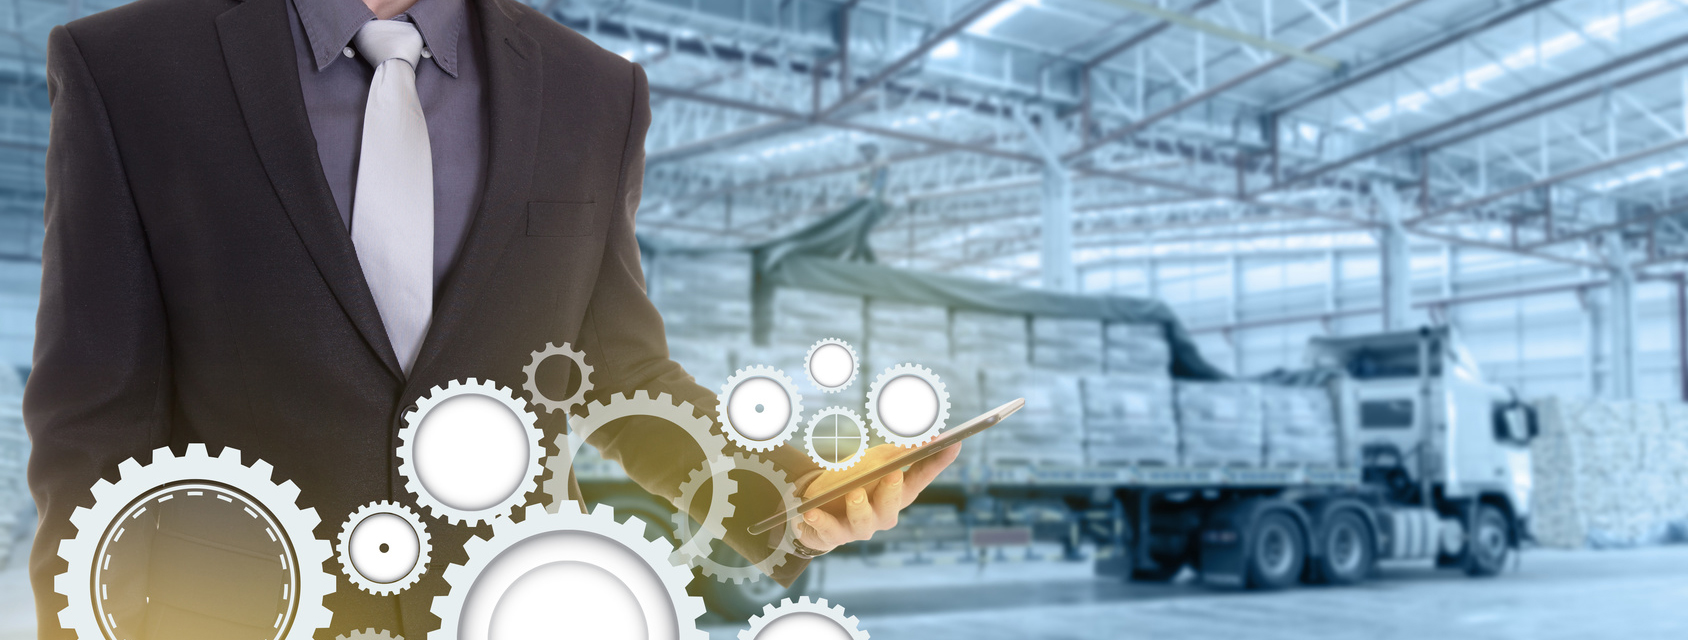 Pre-Packaged or Custom Data Collection Solutions: How to Know which is Right for You